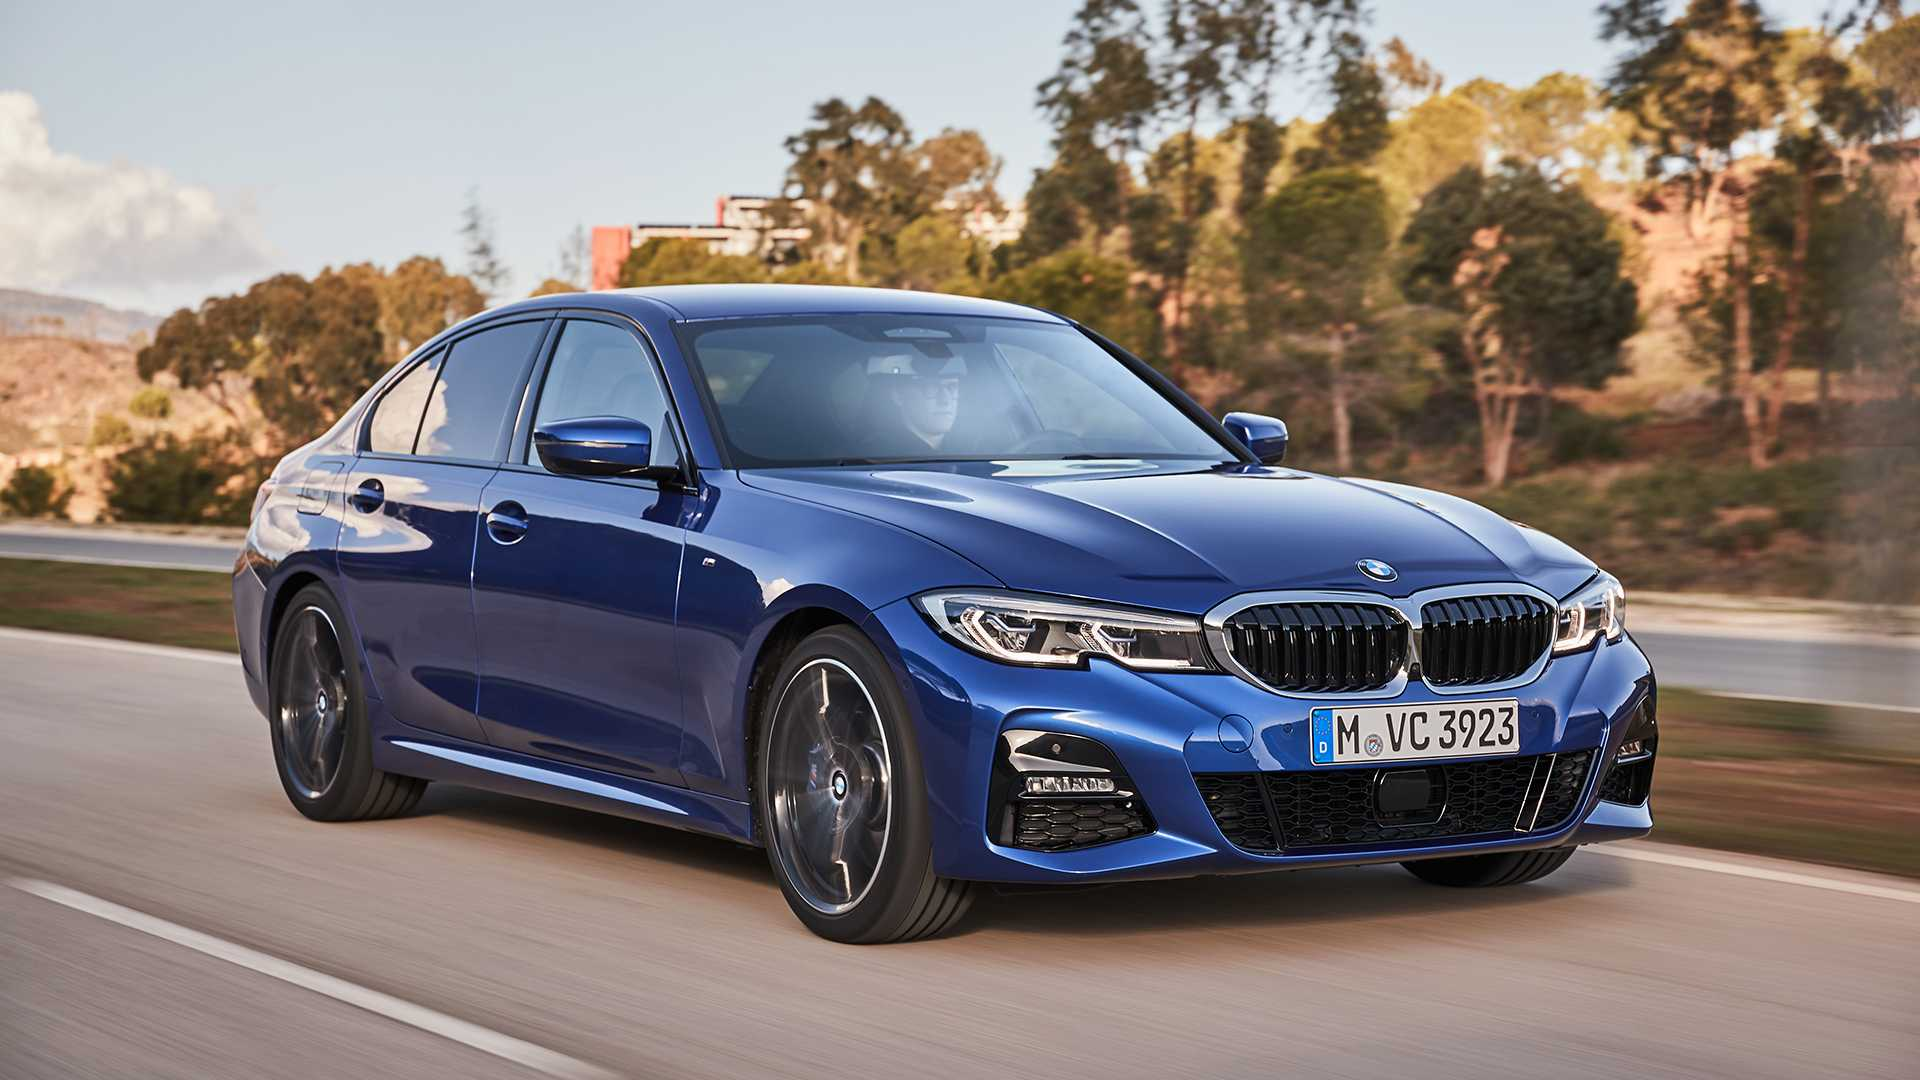 26 All New The Bmw 2019 Series 8 First Drive Redesign with The Bmw 2019 Series 8 First Drive